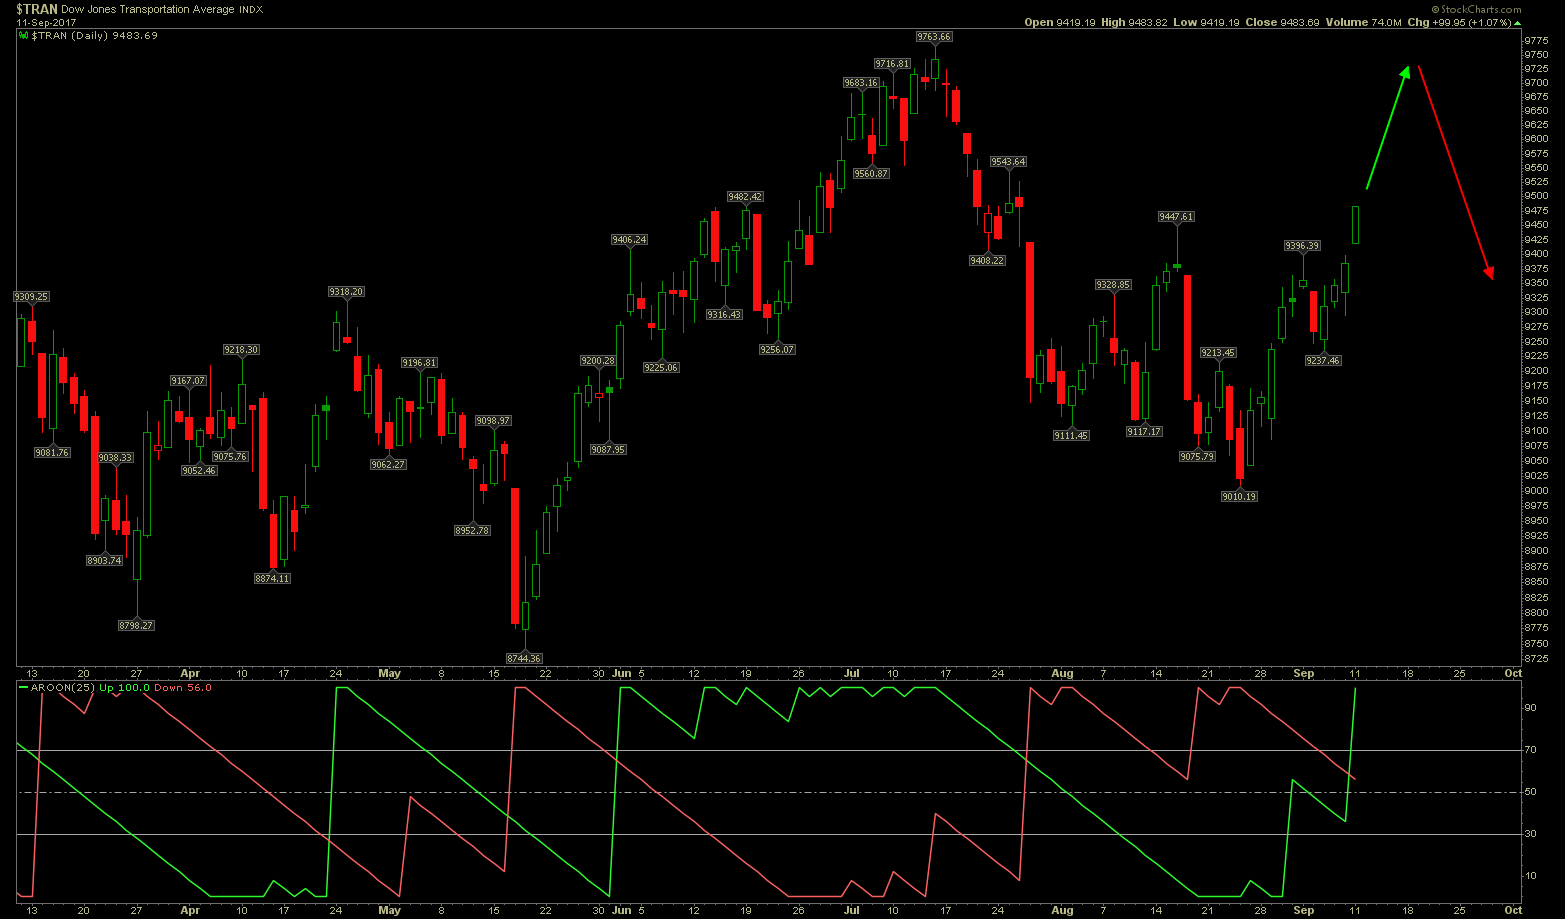 Dow Jones Transportation Chart Fires Buy Signal On AROON Spike Up